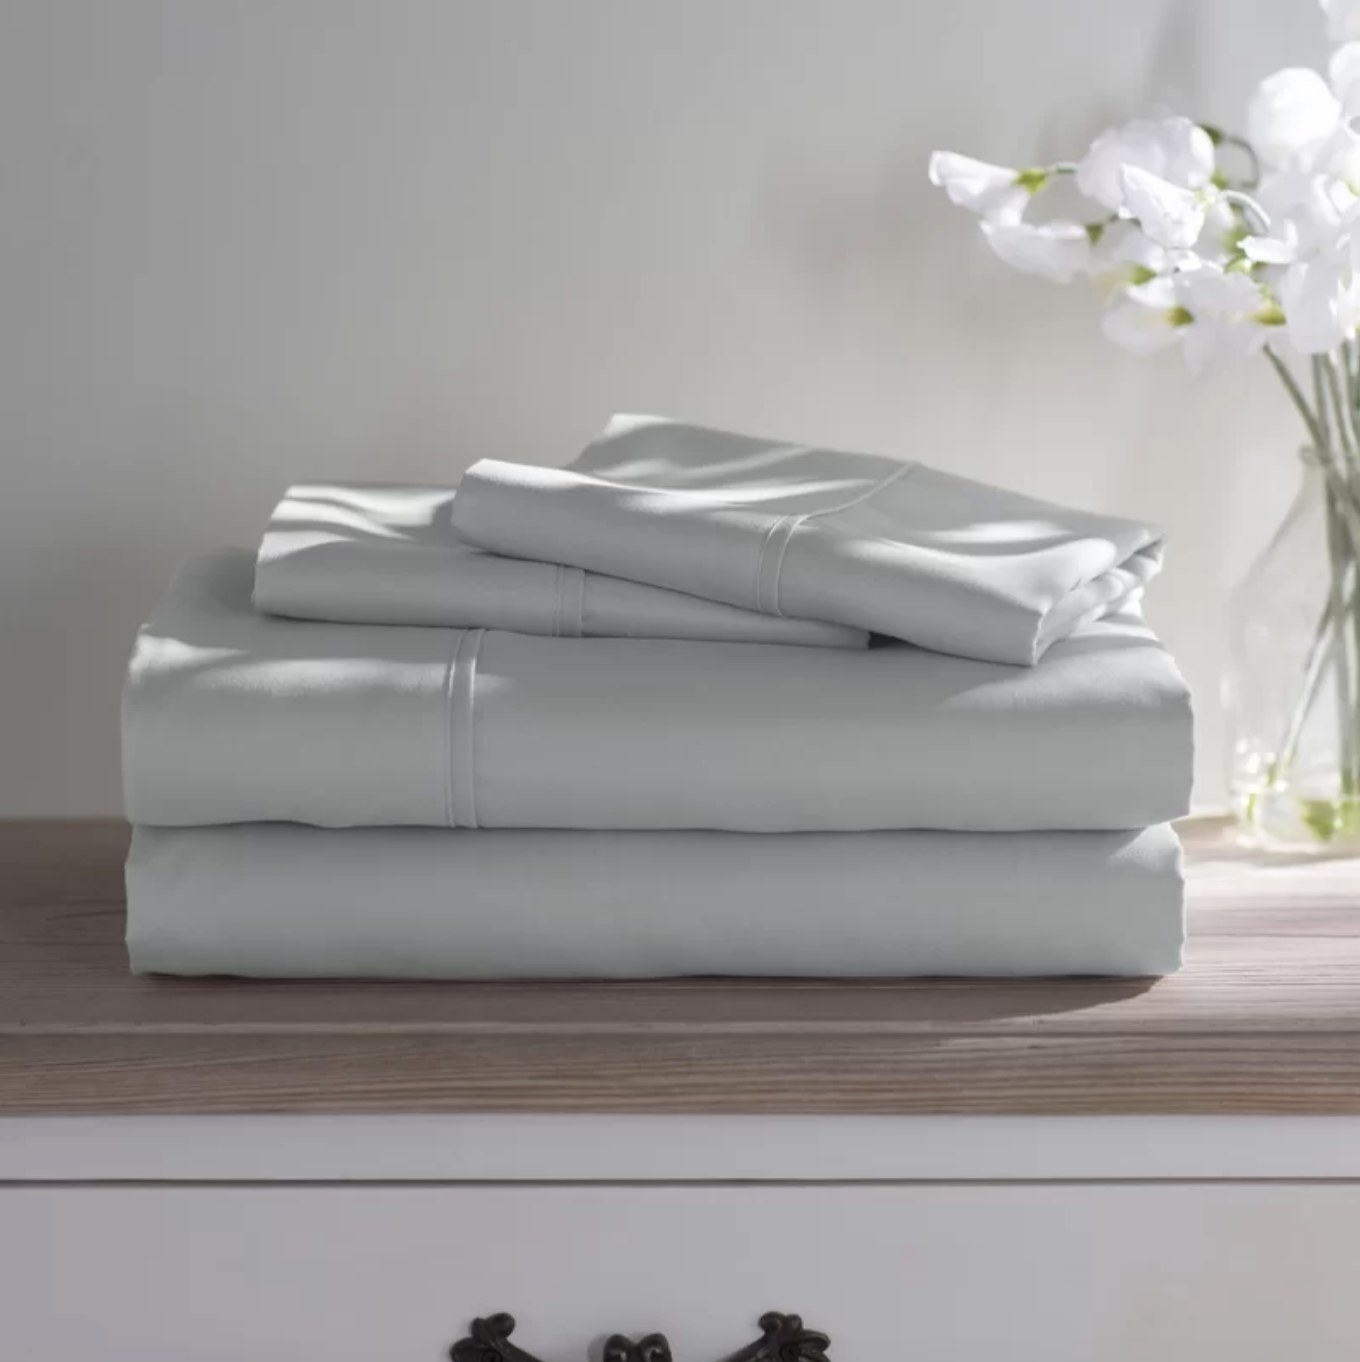 The sheet set in light gray sitting on top of a wood dresser